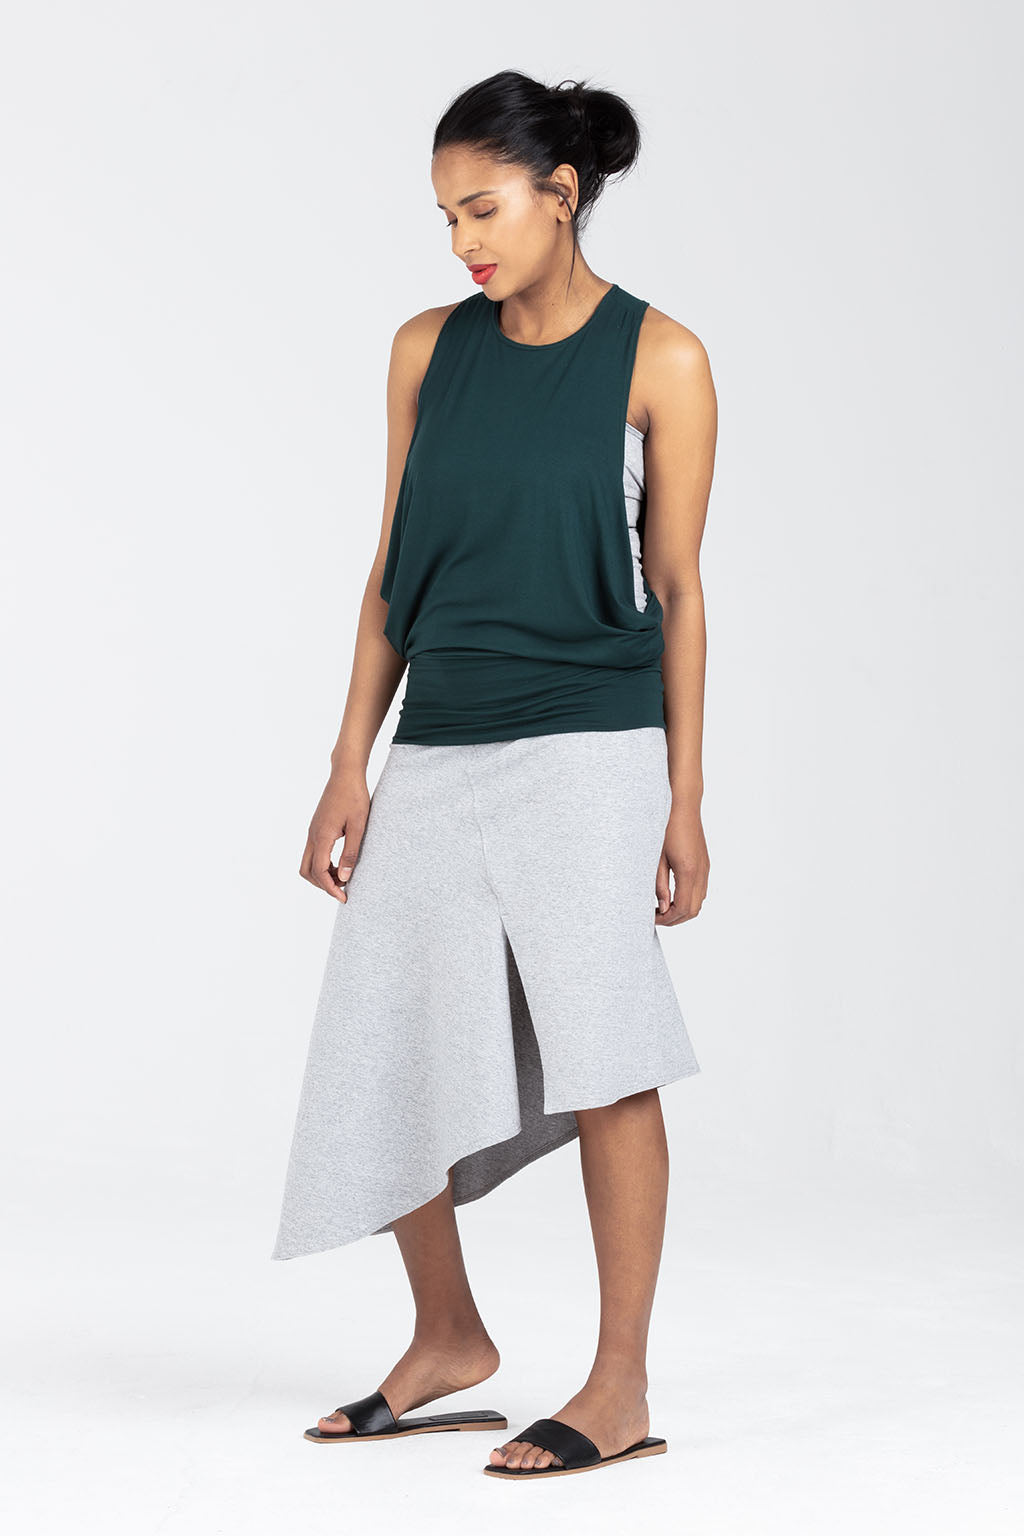 Sarka London - Rosalind Skirt